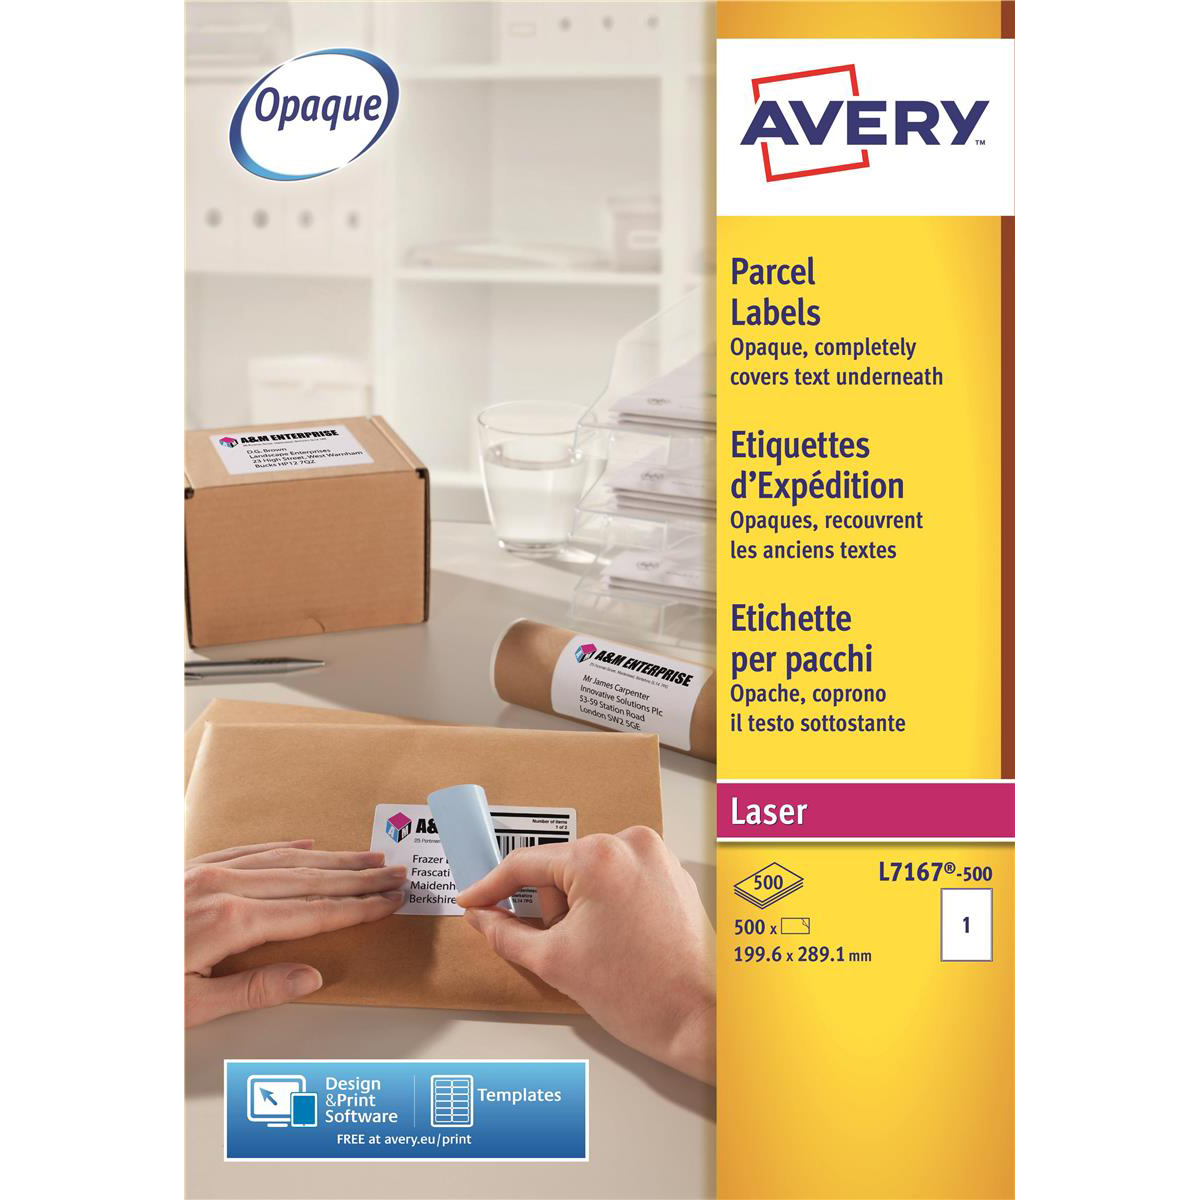 Avery Parcel Labels Laser Jam-free 1 per Sheet 199.6x289.1mm Opaque White Ref L7167-500 [500 Labels]